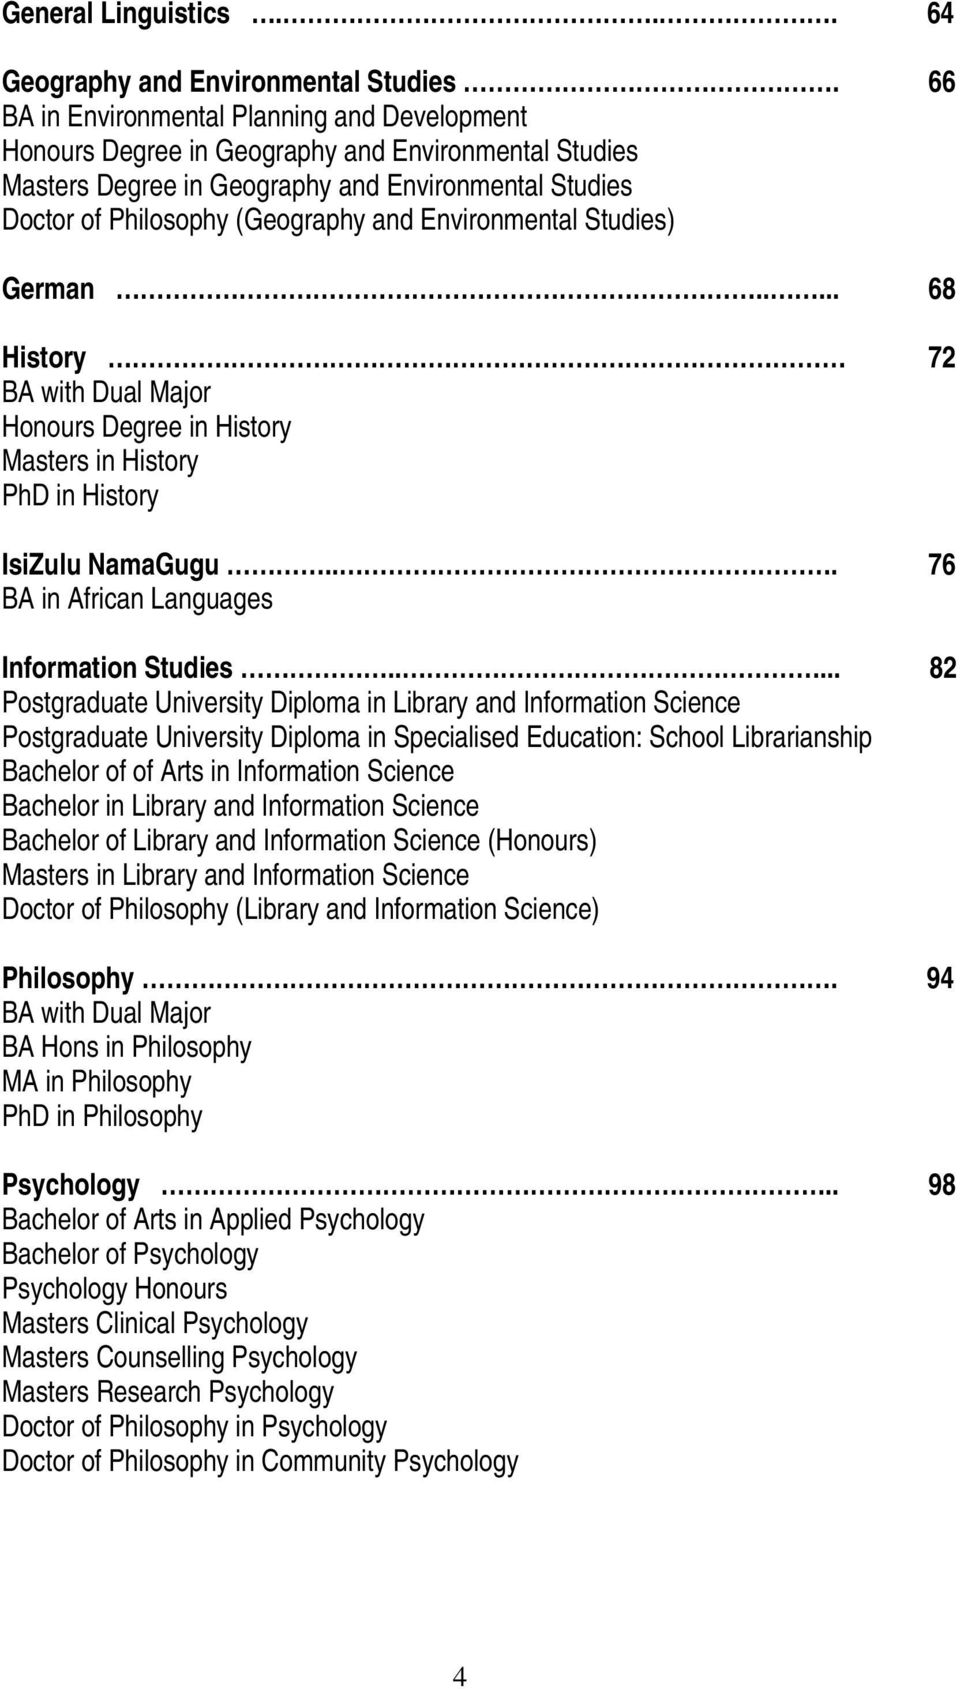 How many years after a bachelor's degrees does it take to get a doctorate in religion?